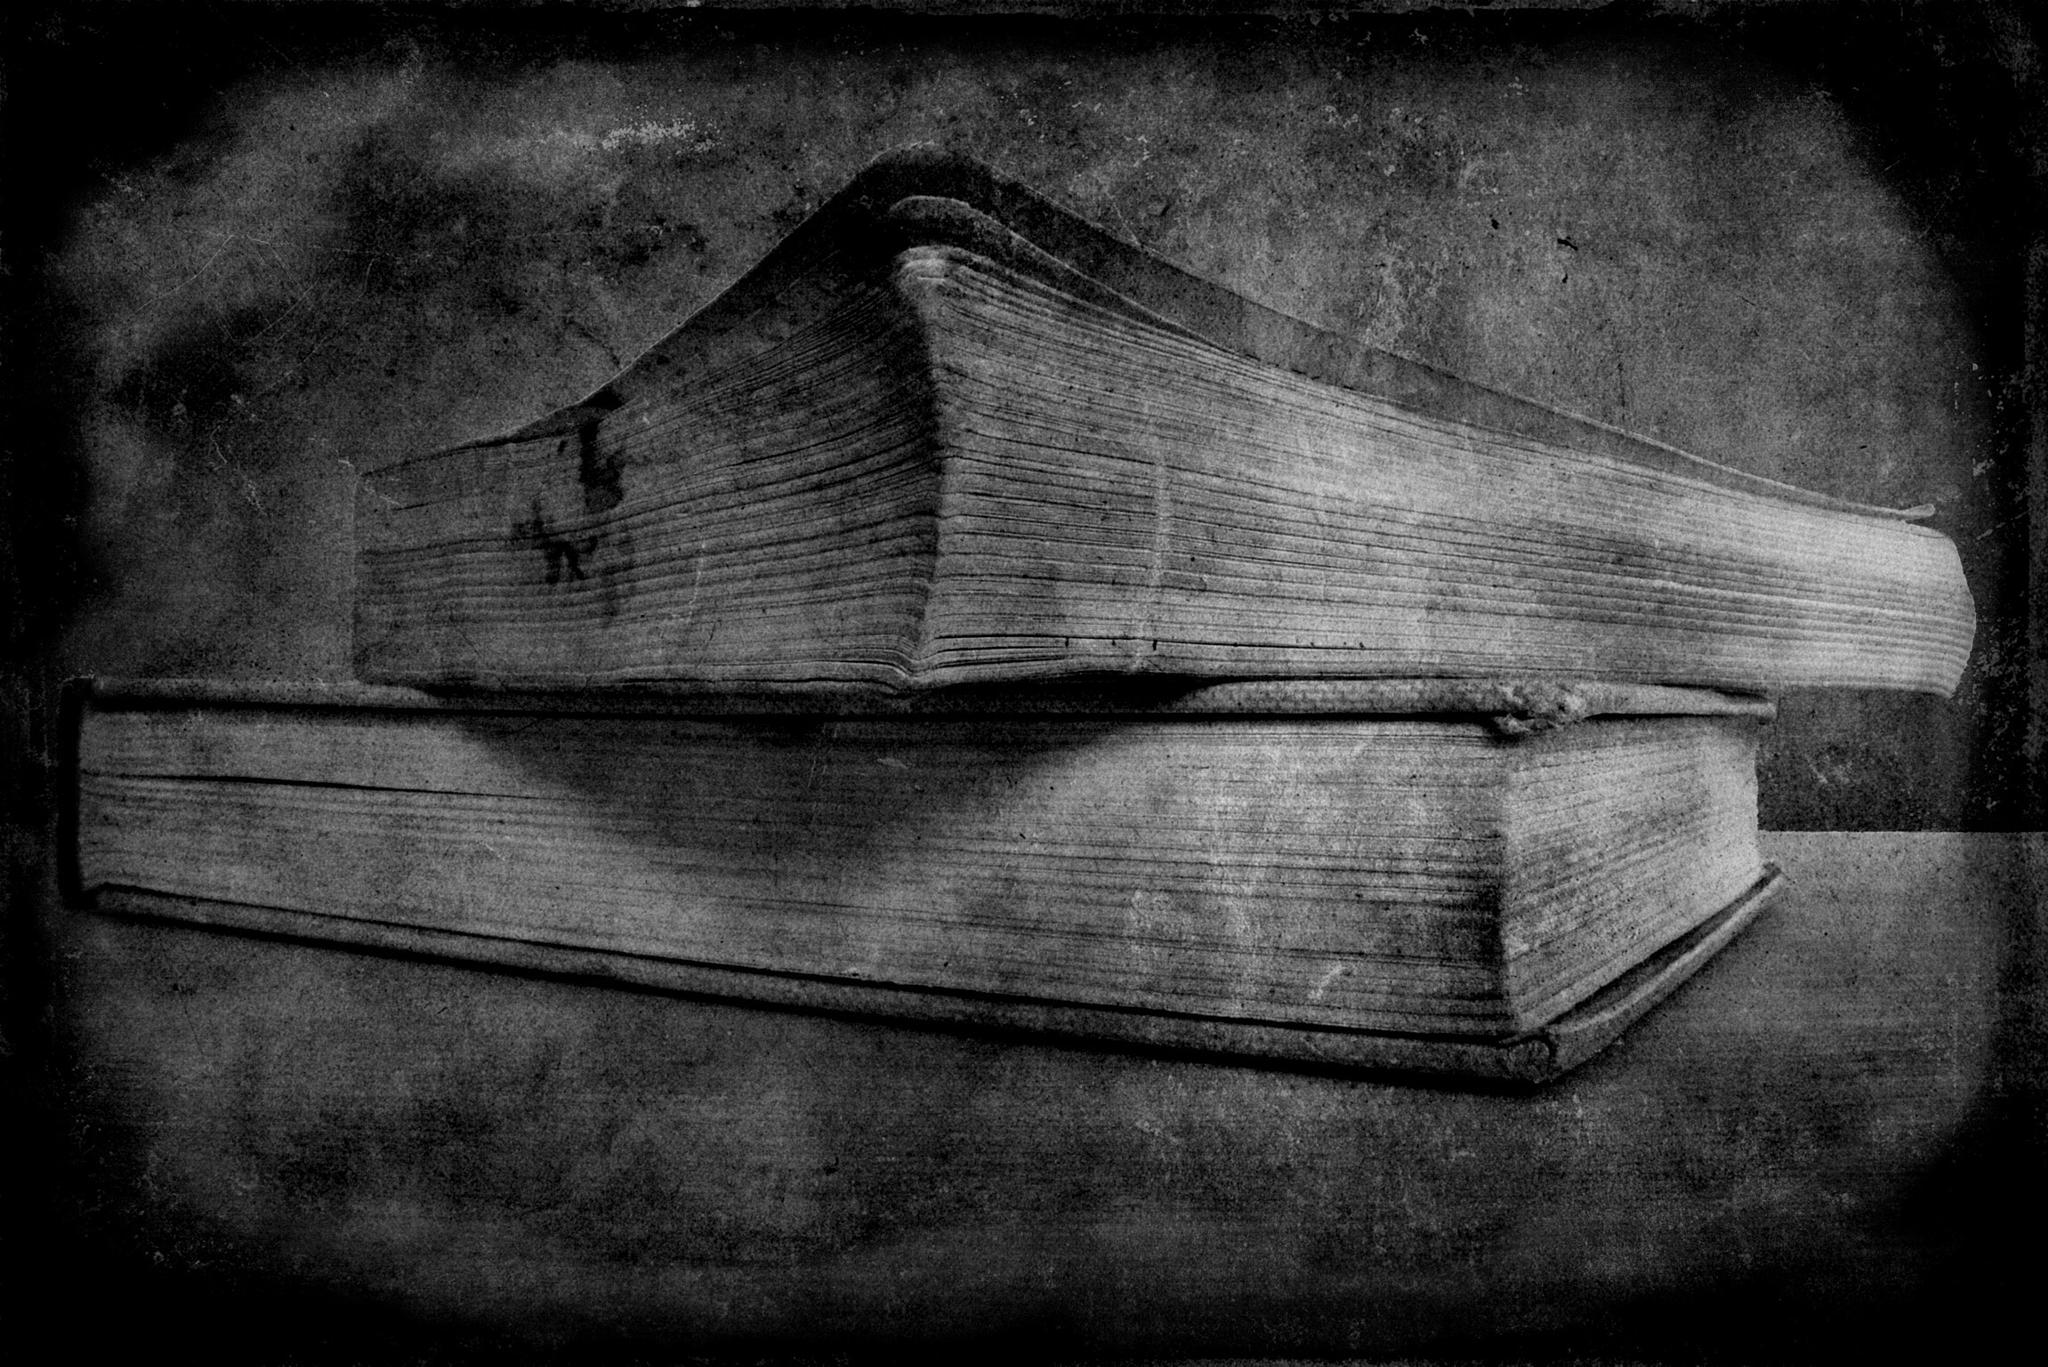 Old Books by slcouzens